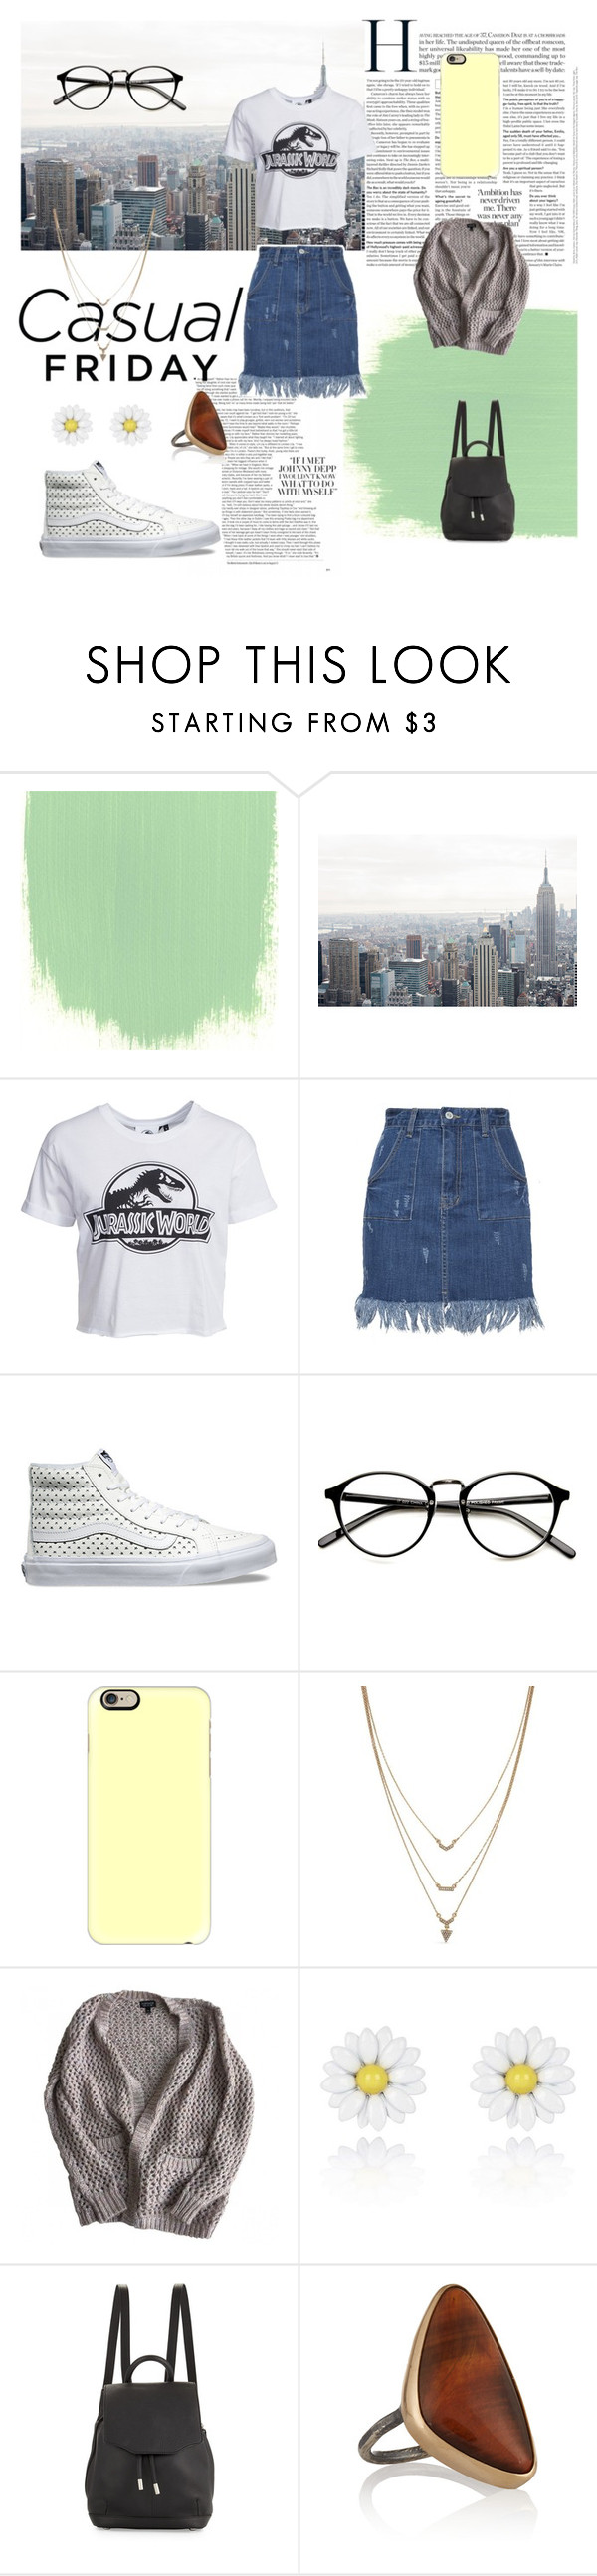 """Casual"" by kaysielee ❤ liked on Polyvore featuring New Look, Vans, Casetify, Jessica Simpson, Topshop, River Island, rag & bone, Melissa Joy Manning, modern and vintage"